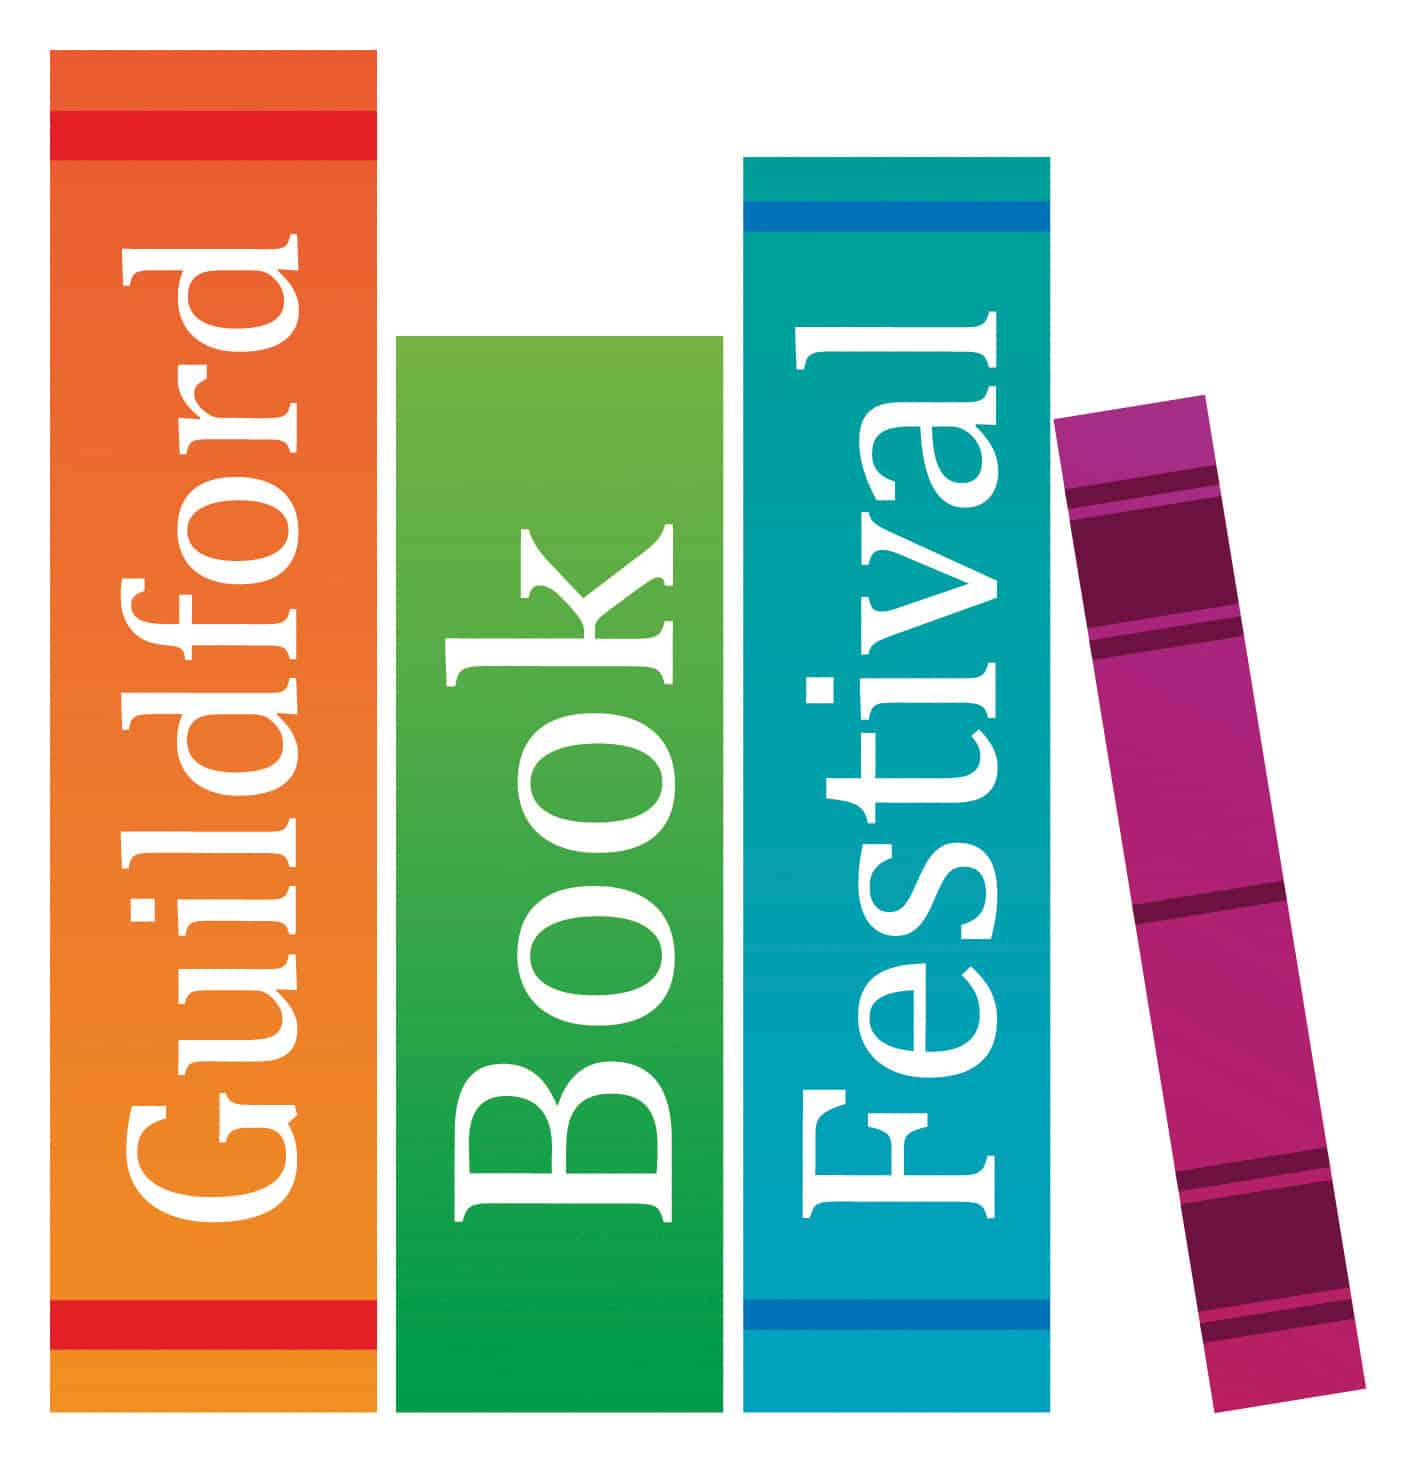 Guildford book Festival logo